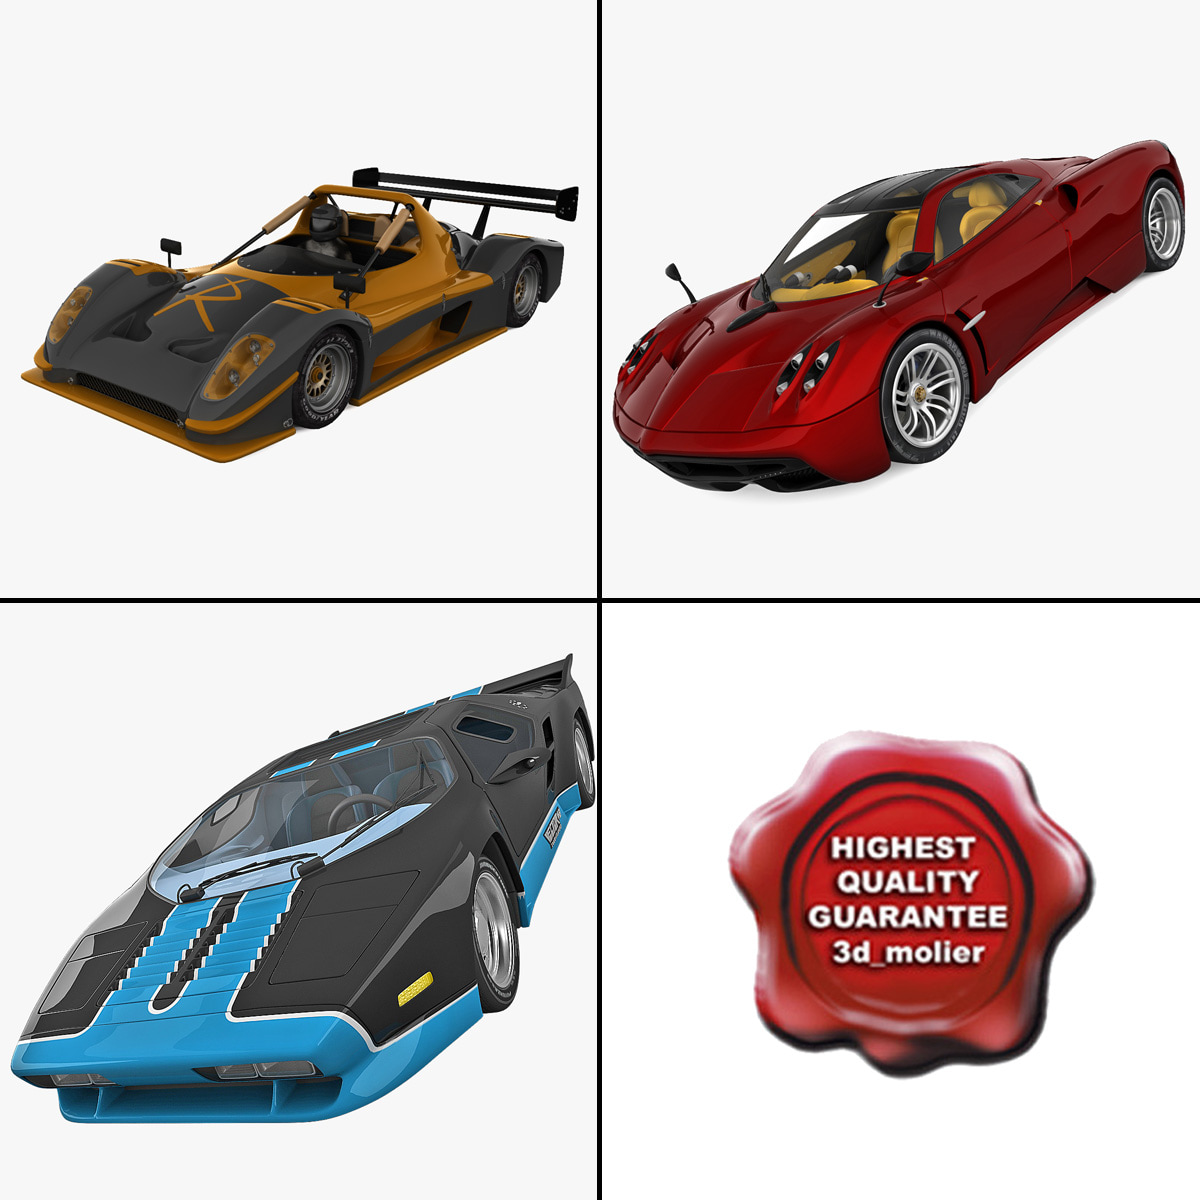 supercar collection 2 copy.jpg